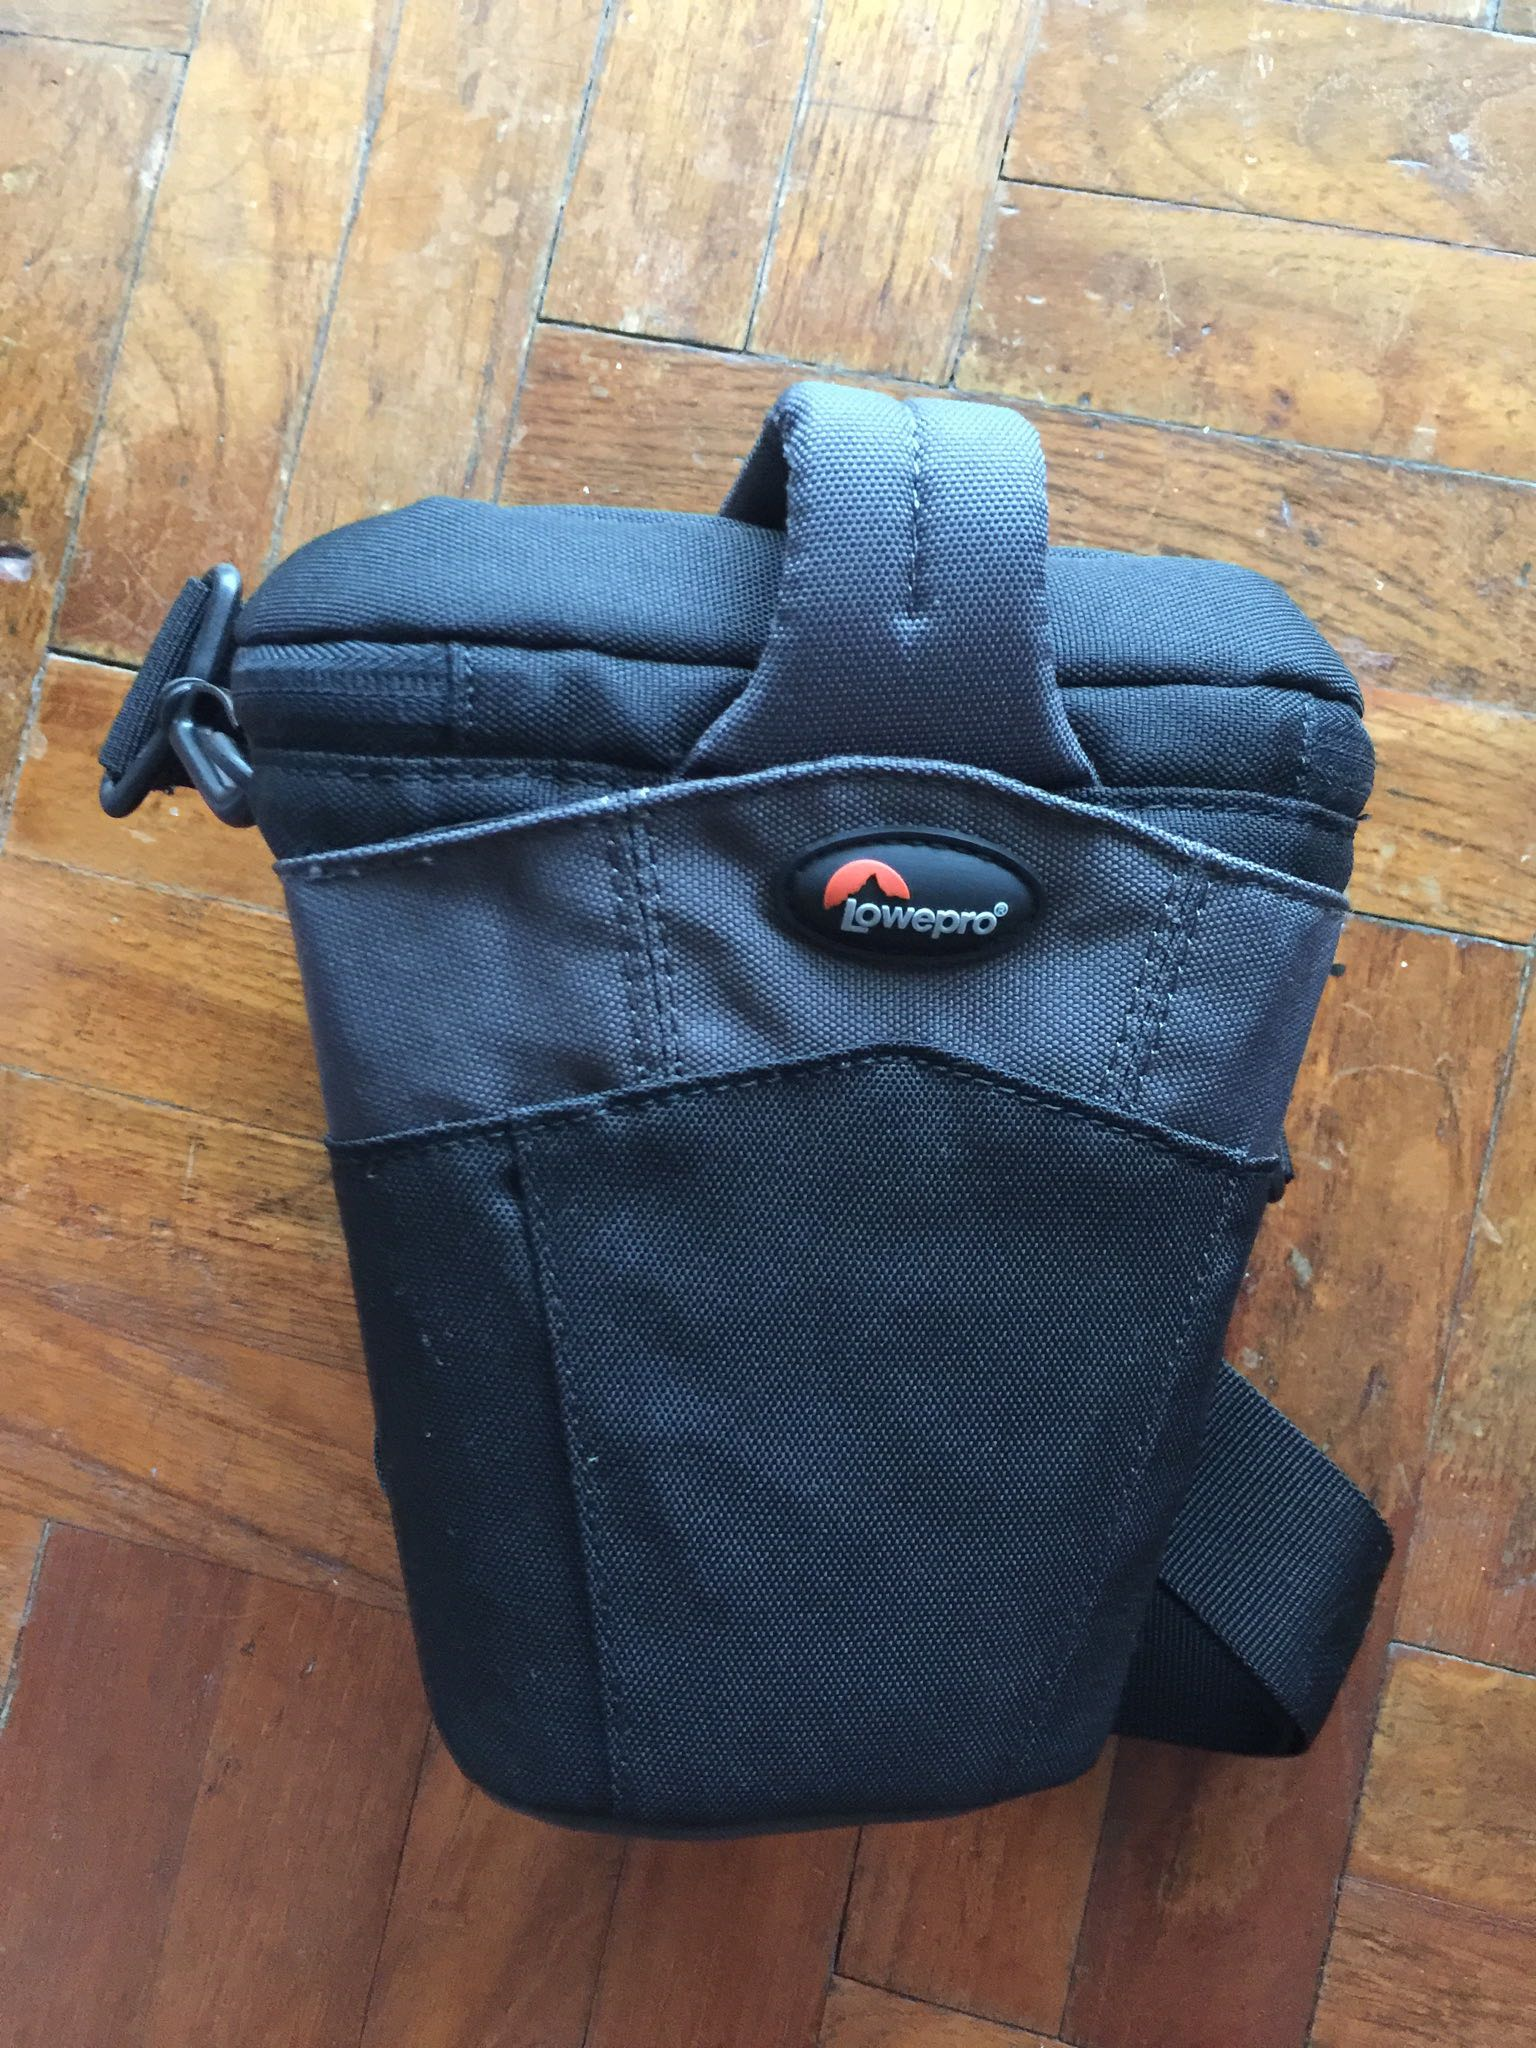 Lowepro Cirrus Camera Pouch Photography Accessories Toploader Zoom 50 Aw Ii Blue Photo